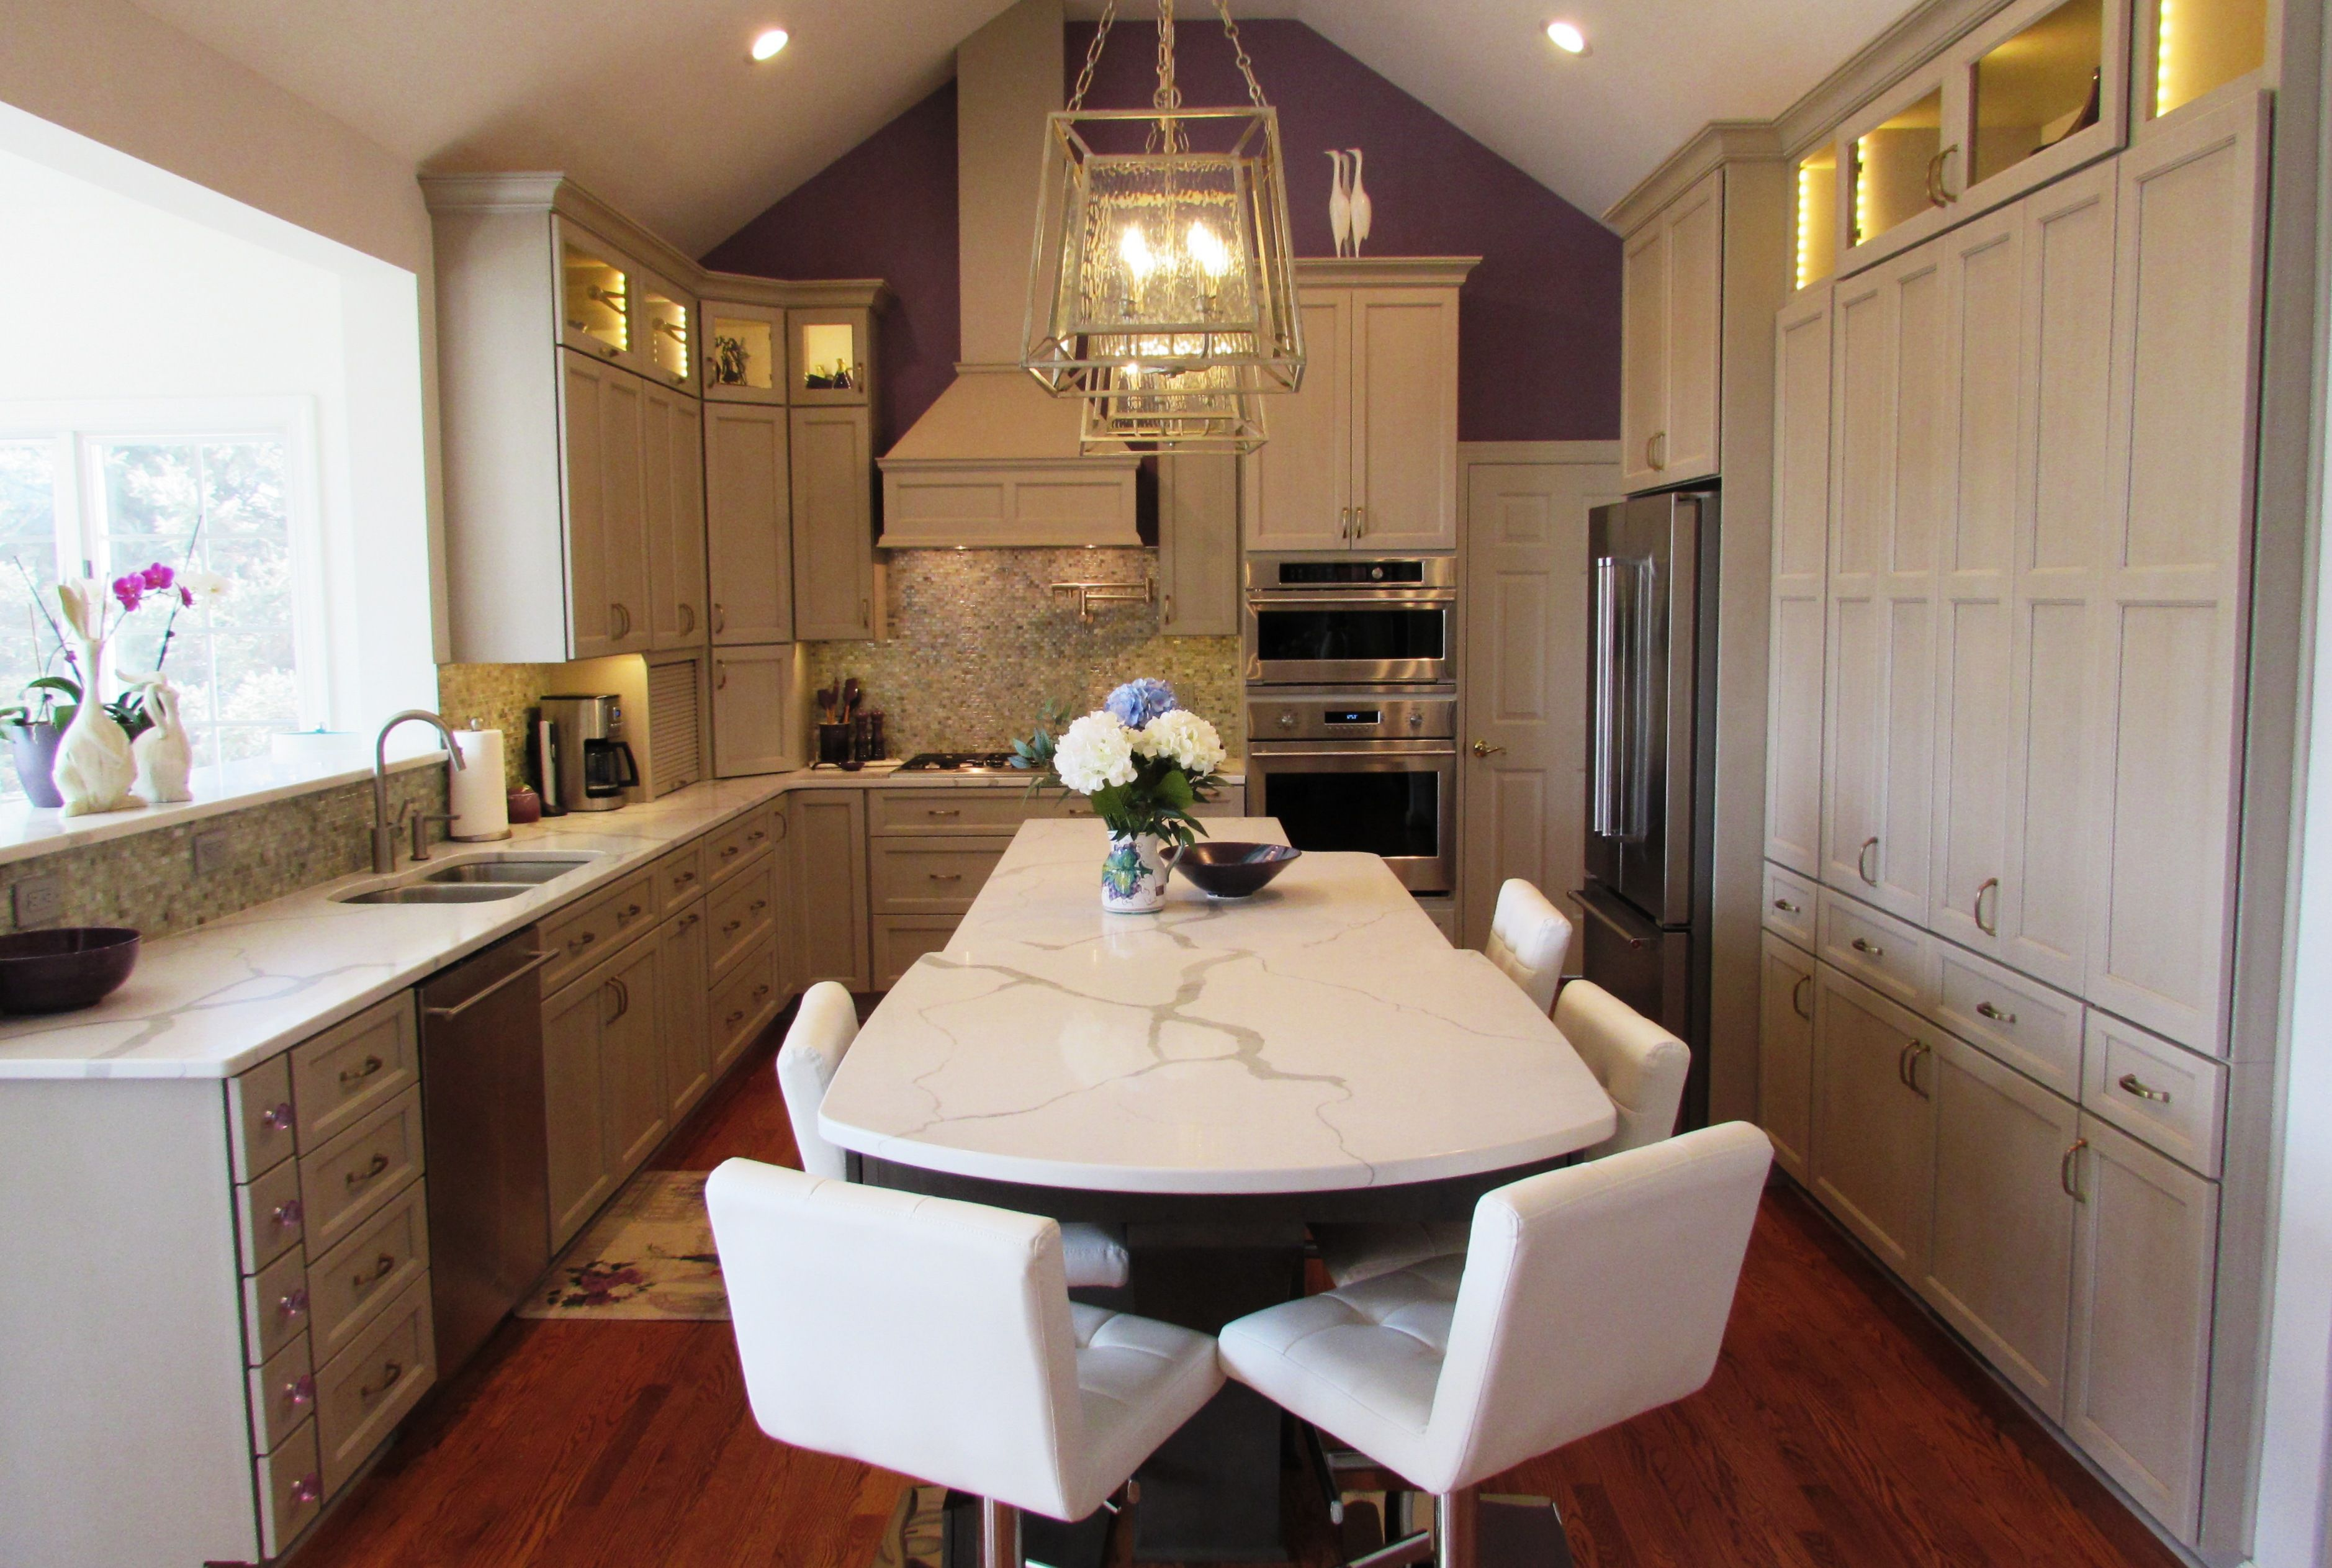 Kitchen Remodel In Potomac Md With Gray Cabinetry Kitchenremodel Custom Kitchens Kitchen Remodel Remodeling Companies